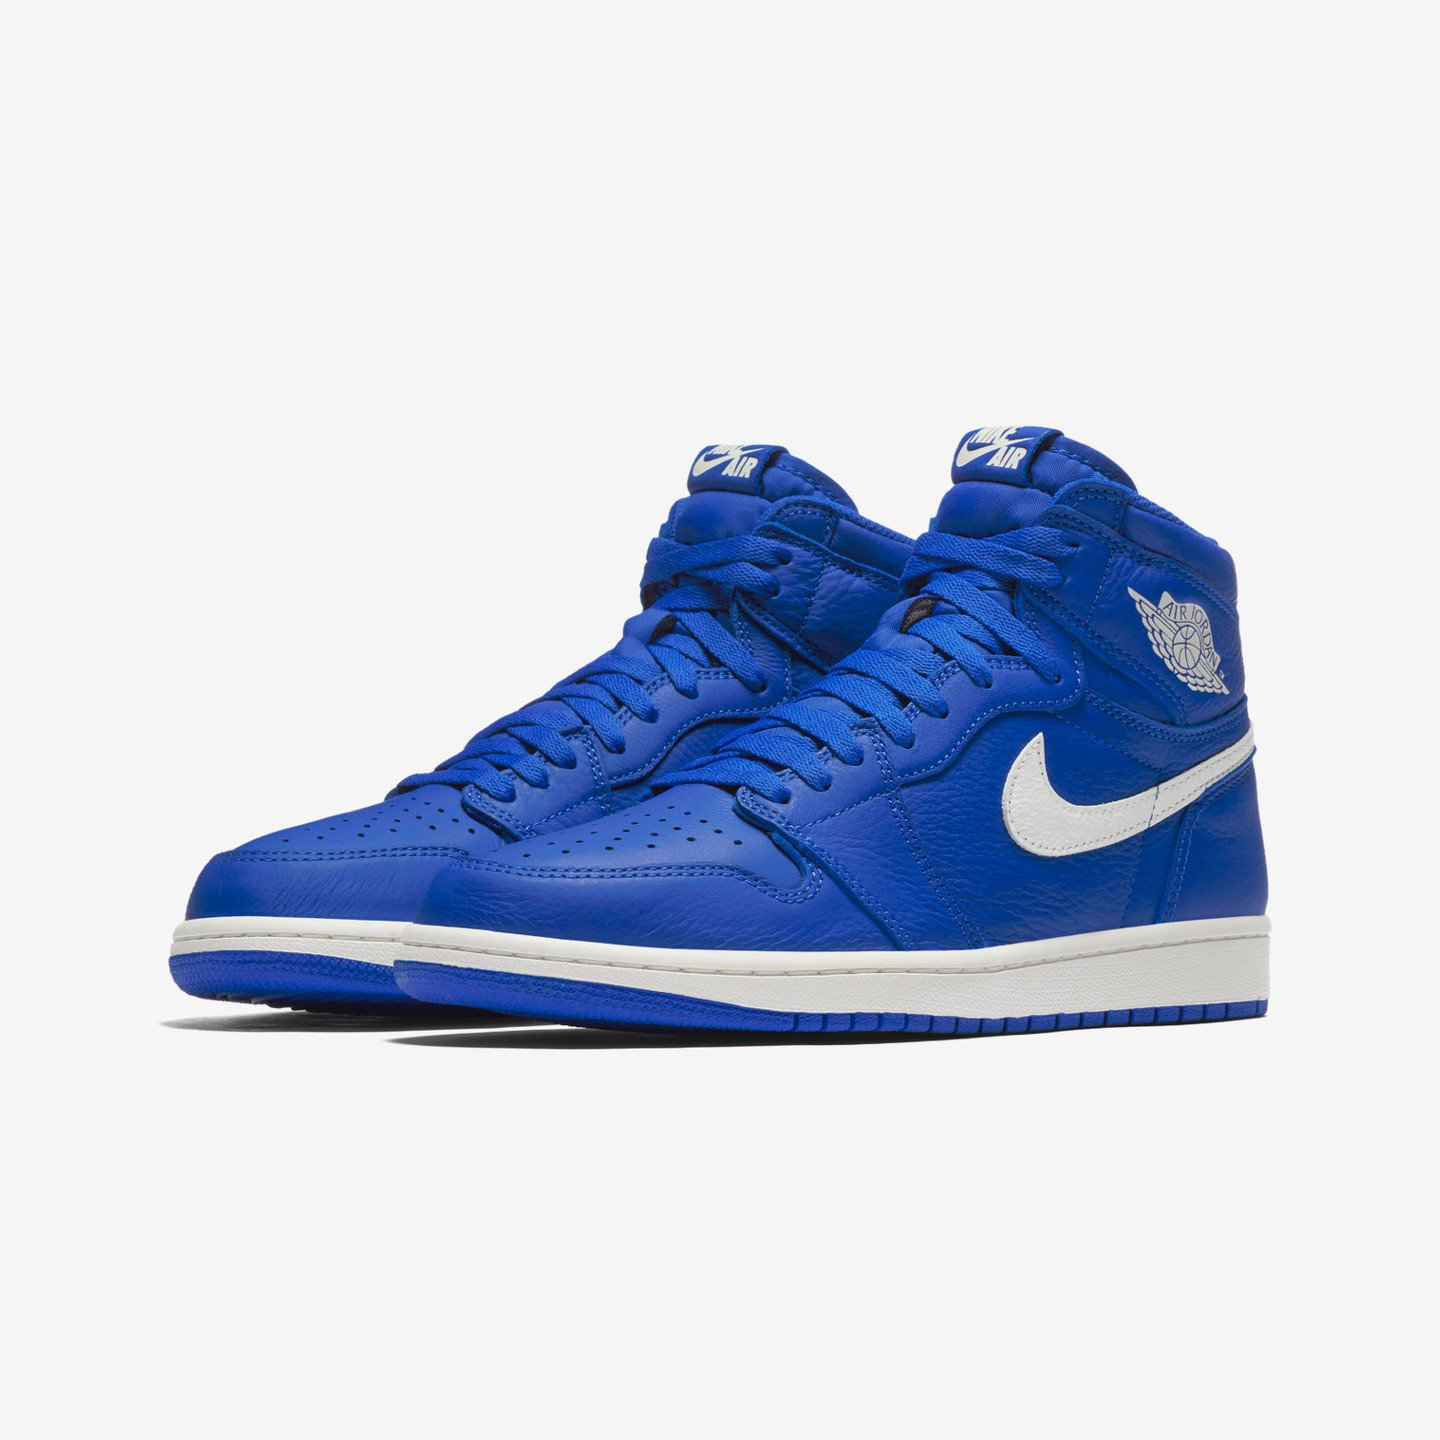 Jordan Air Jordan 1 Retro High OG GS Hyper Royal / Sail 575441-401